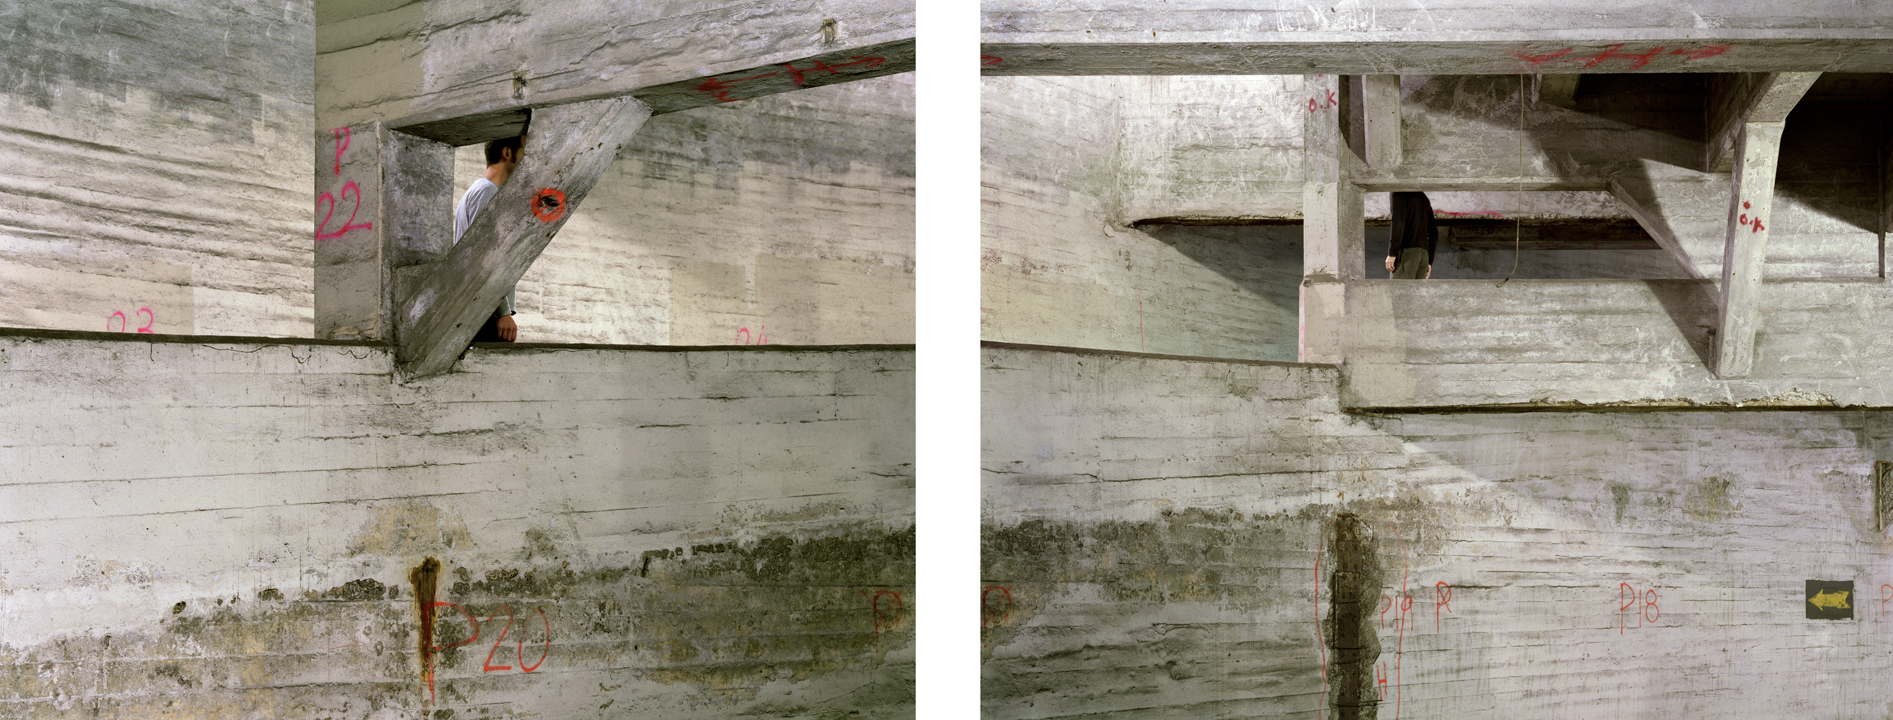 """Untitled (watch) from Insertions series diptych, 2 chromogenic prints 30""""x40"""" 2001"""